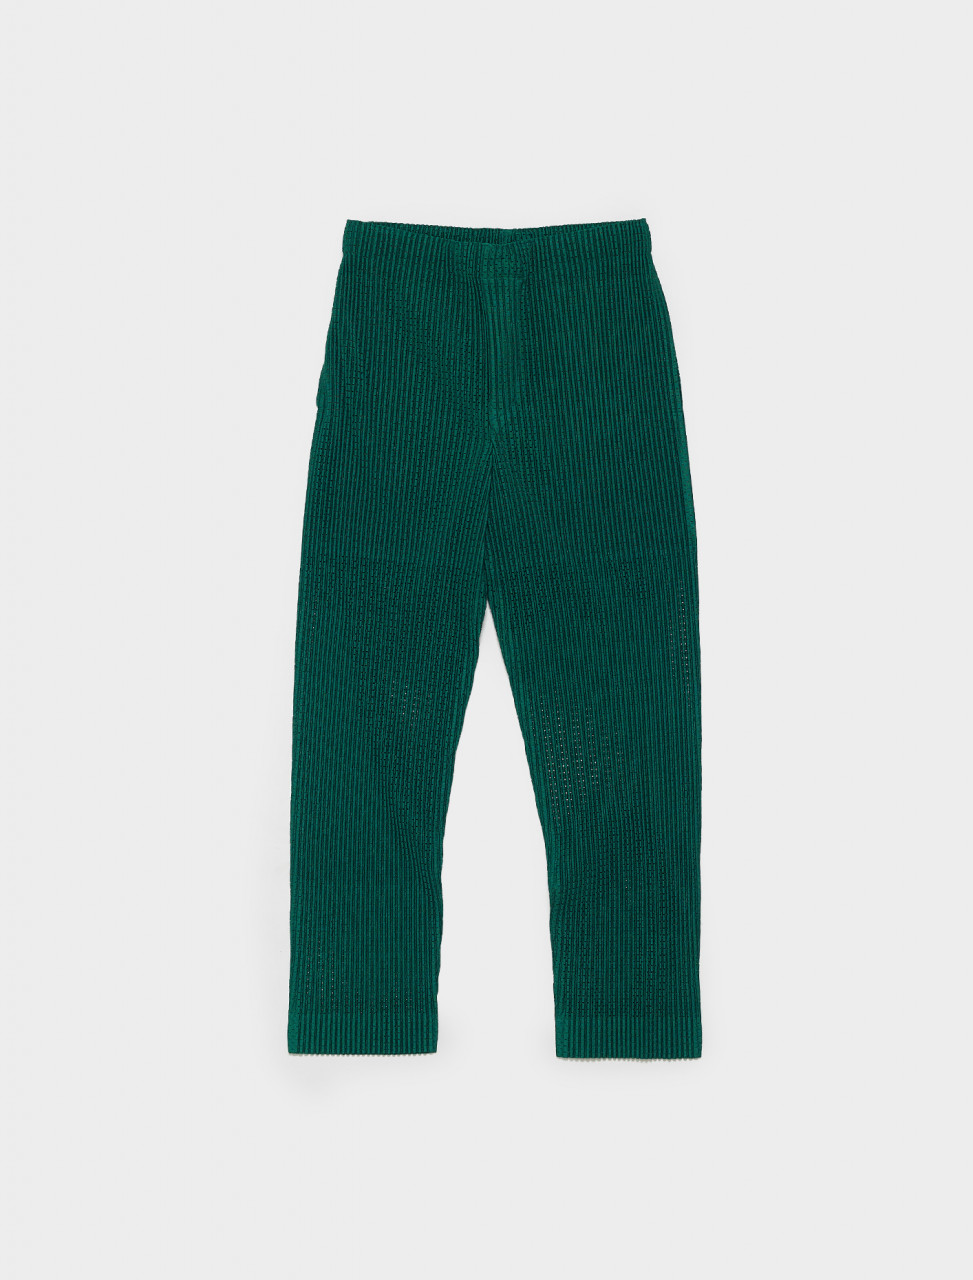 HP16JF147-62 HOMME PLISSE ISSEY MIYAKE PLEATED TROUSERS IN GREEN